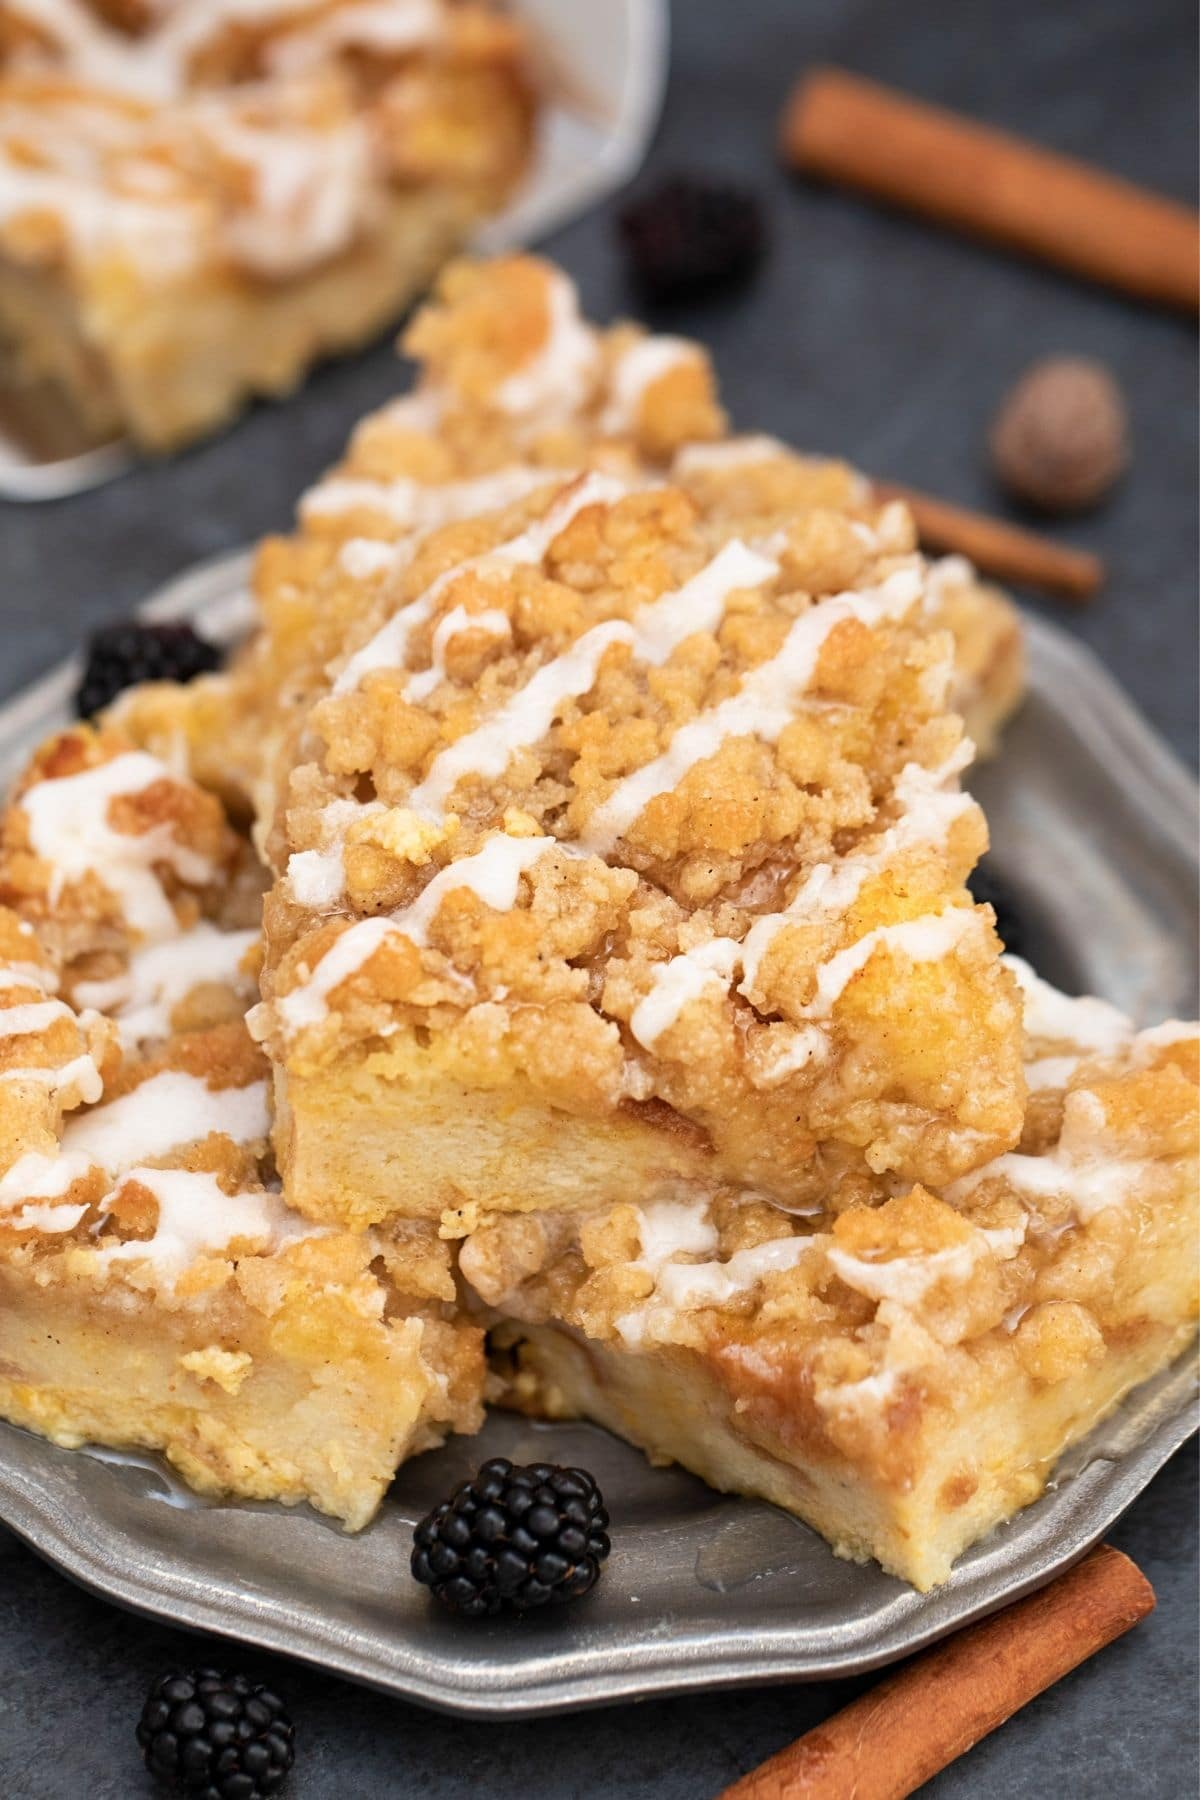 French toast bake squares stacked on black plate on table by cinnamon sticks